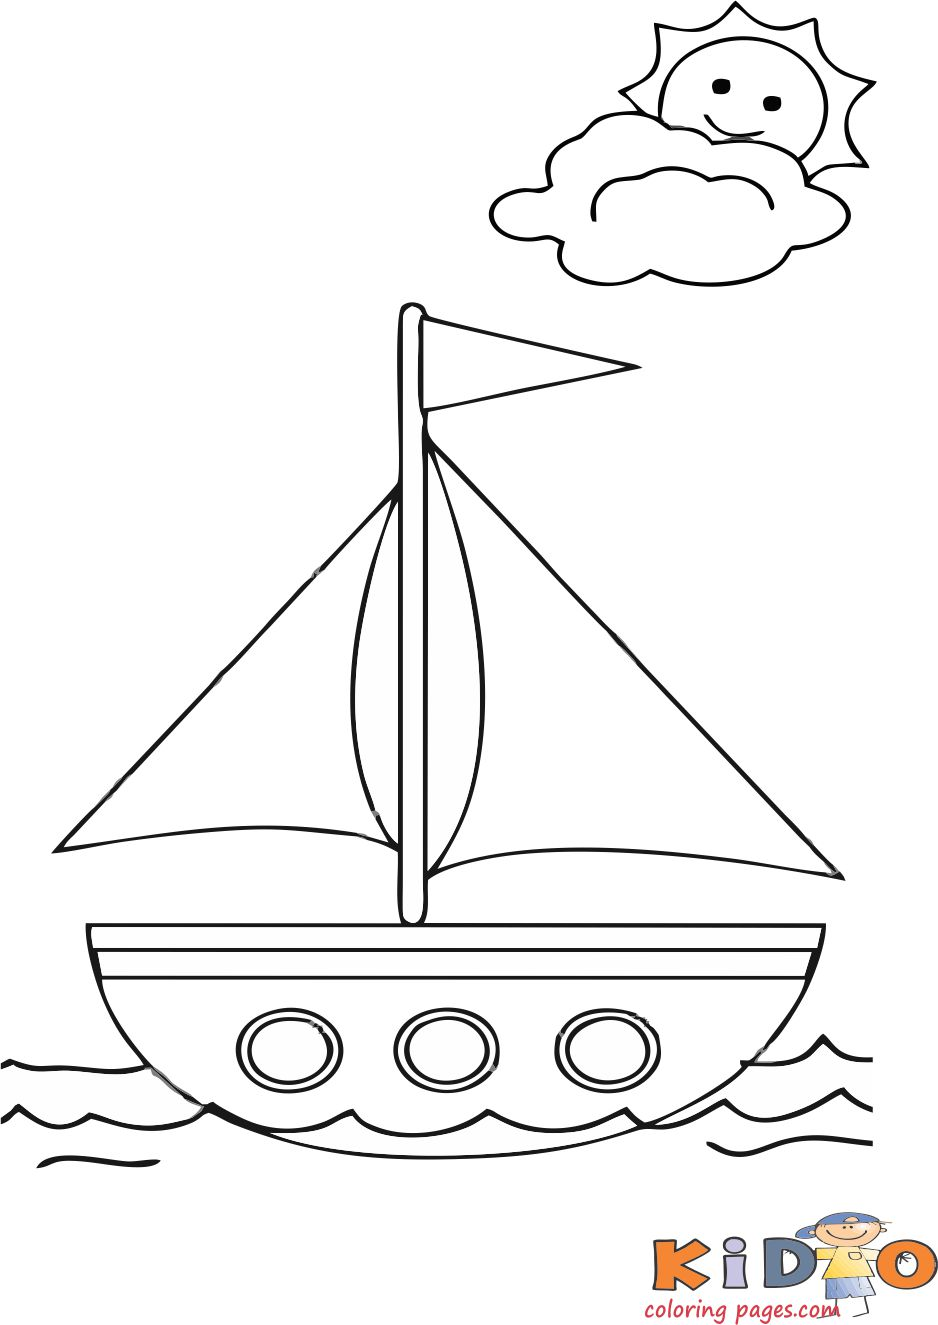 Summer boat coloring pages for kids